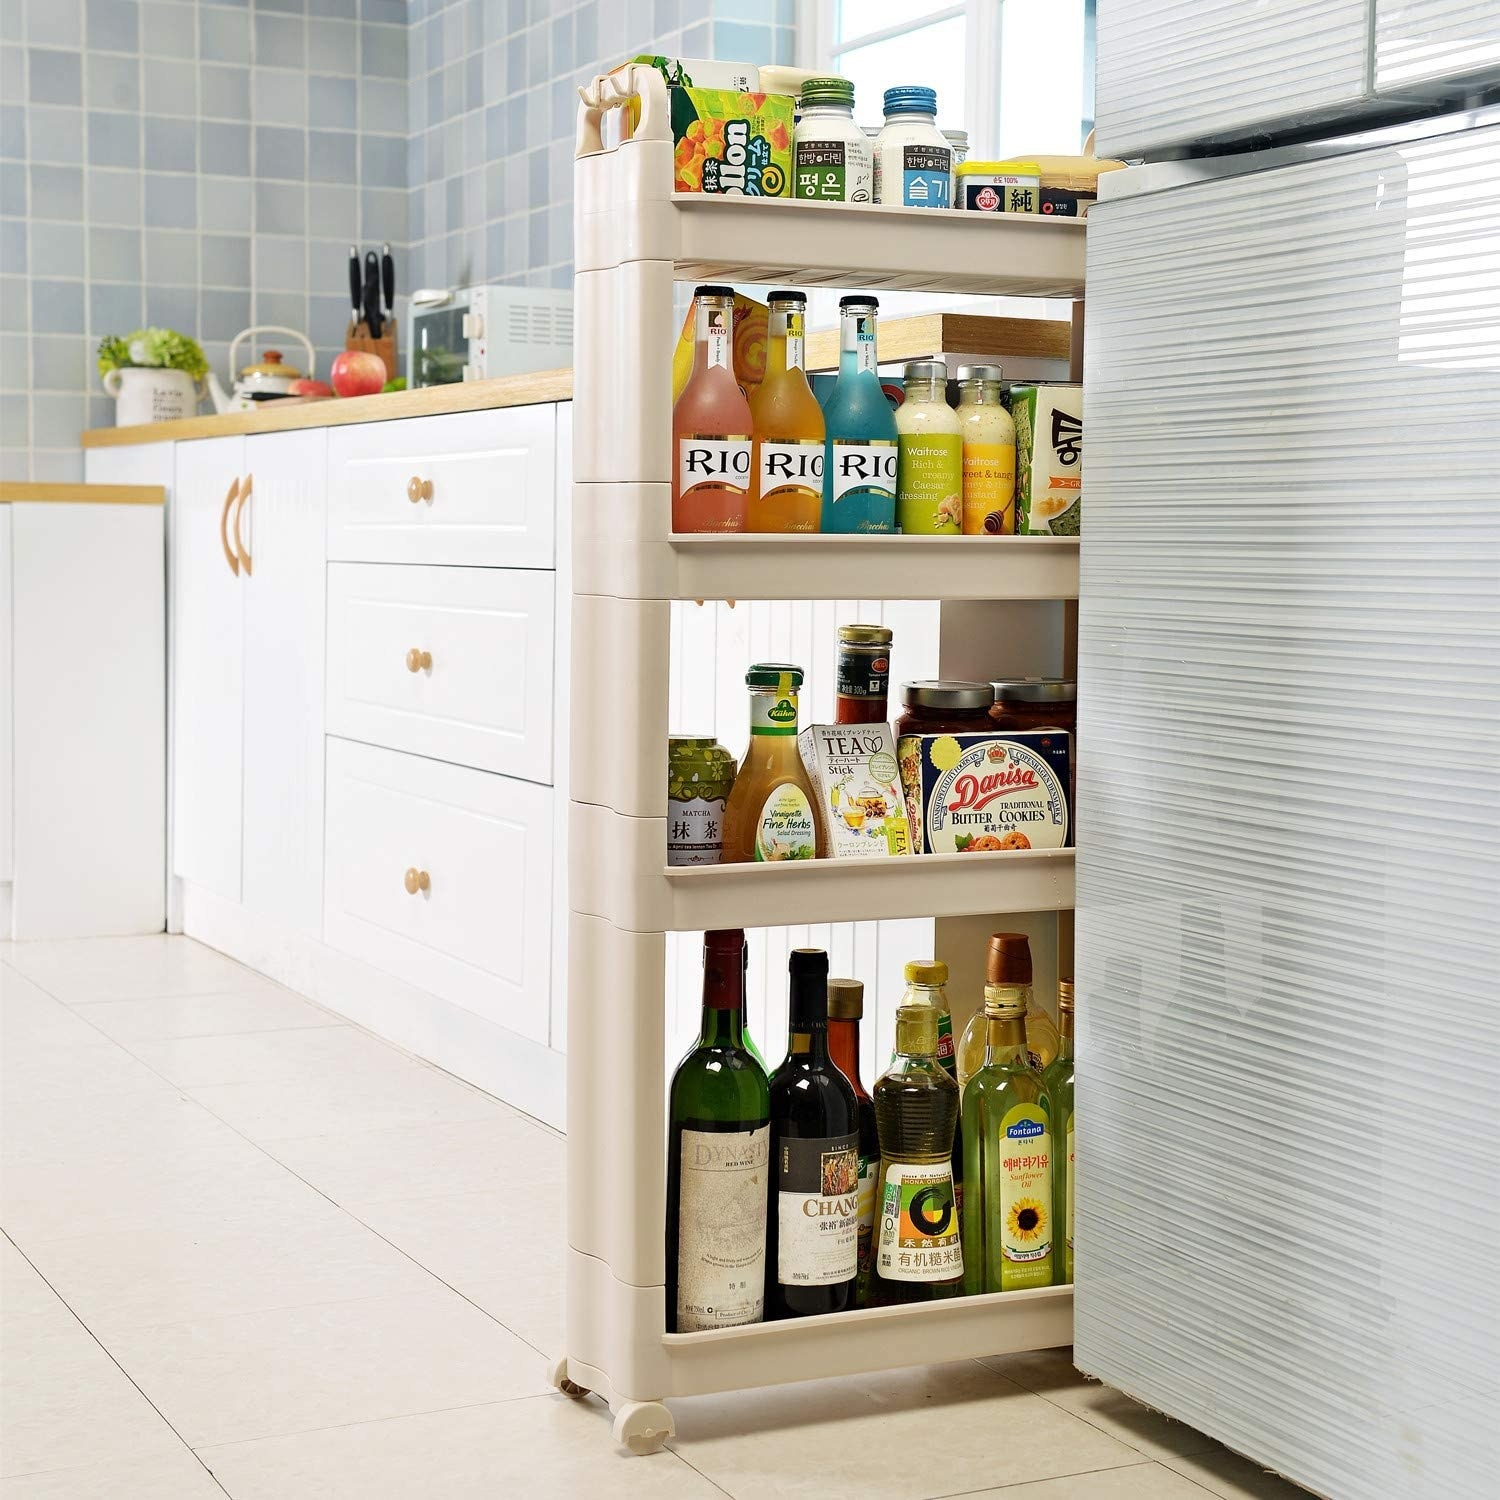 Off-white plastic shelves wedged between a refrigerator and a counterspace